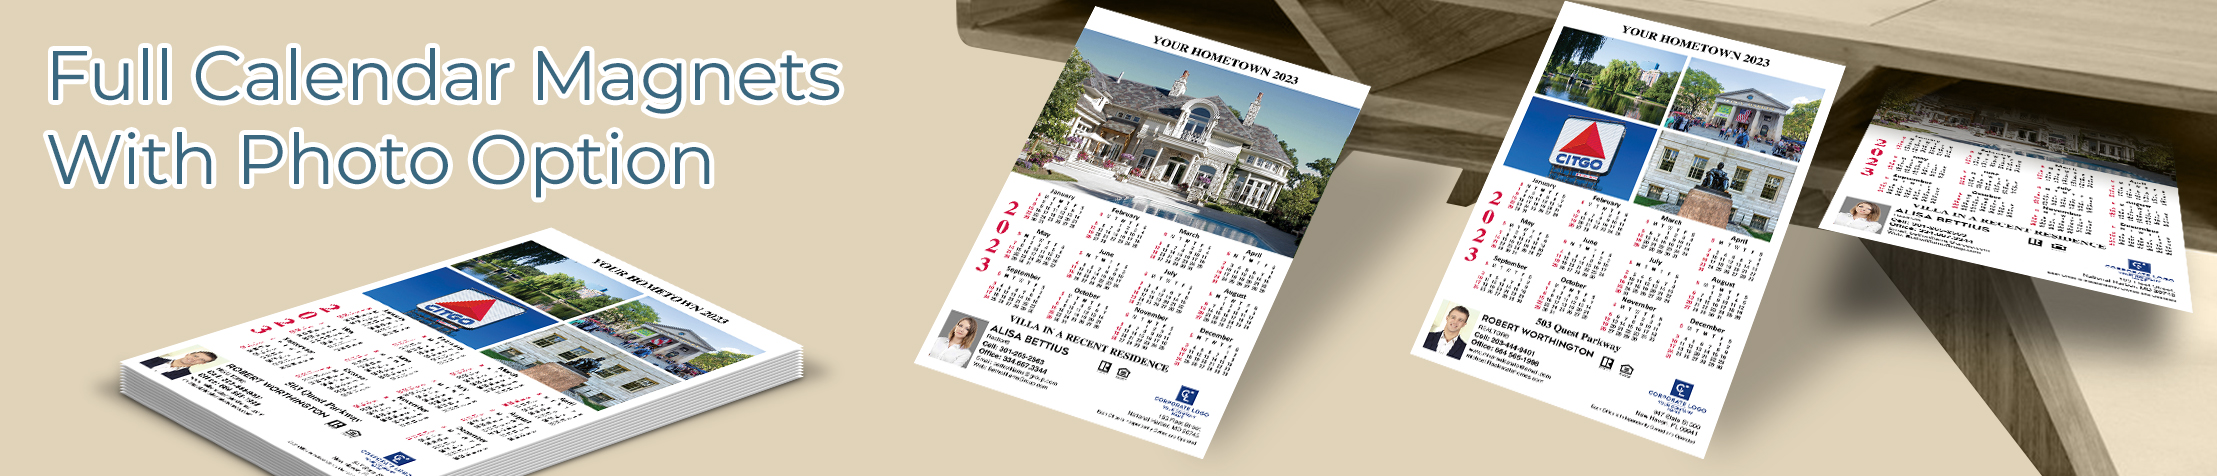 Coldwell Banker Real Estate Full Calendar Magnets With Photo Option - Coldwell Banker 2019 calendars, full-color | BestPrintBuy.com